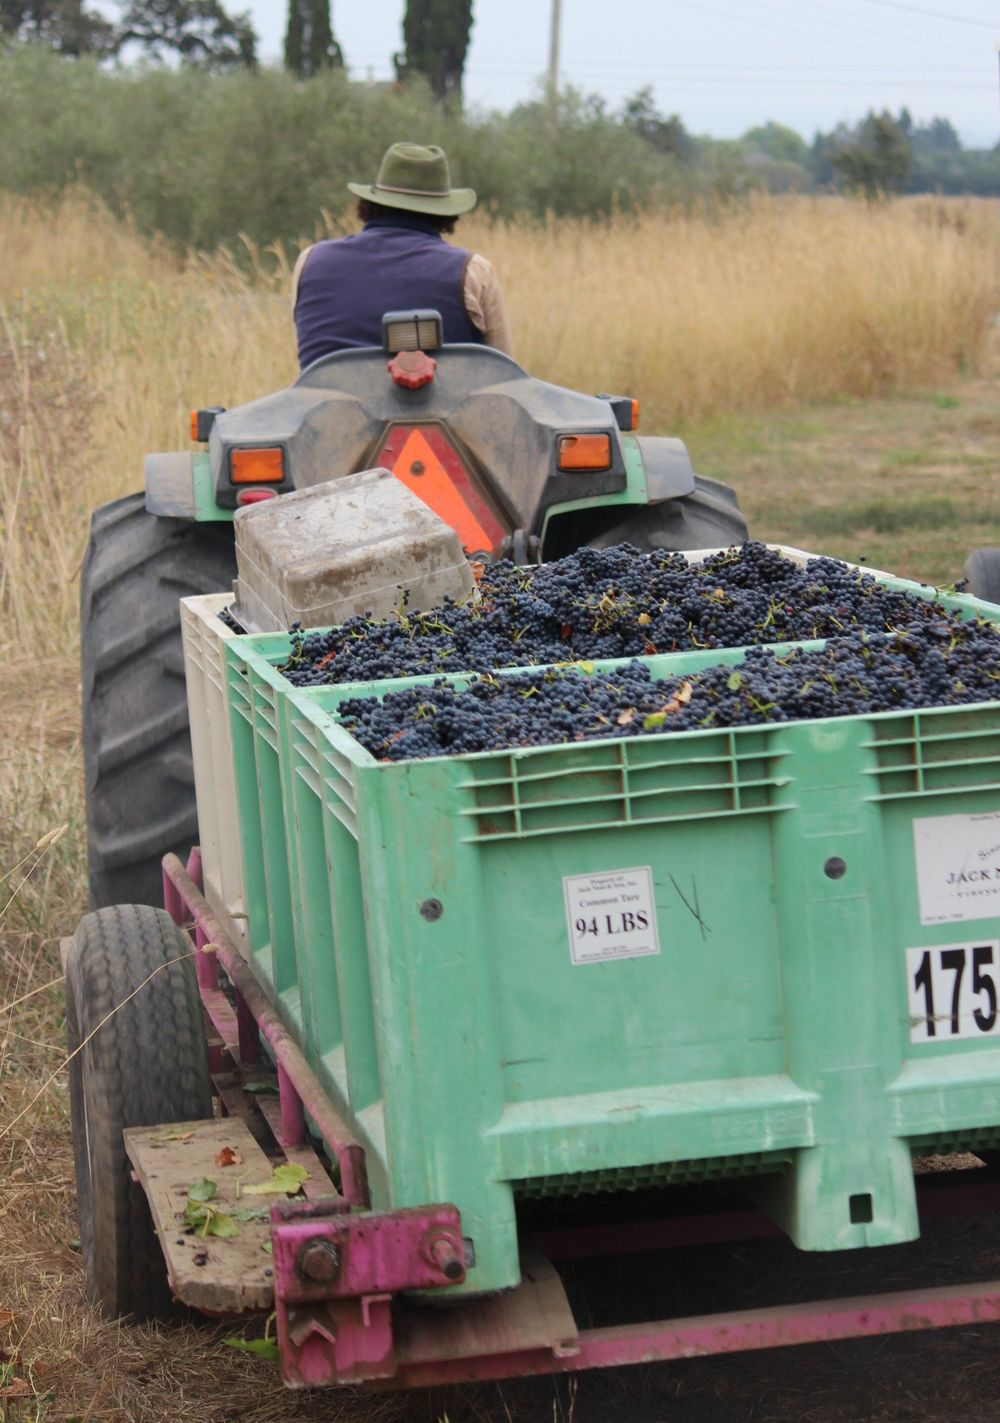 Grapes are ready for their next stage as the farmer drives his fruit to the winemaker.